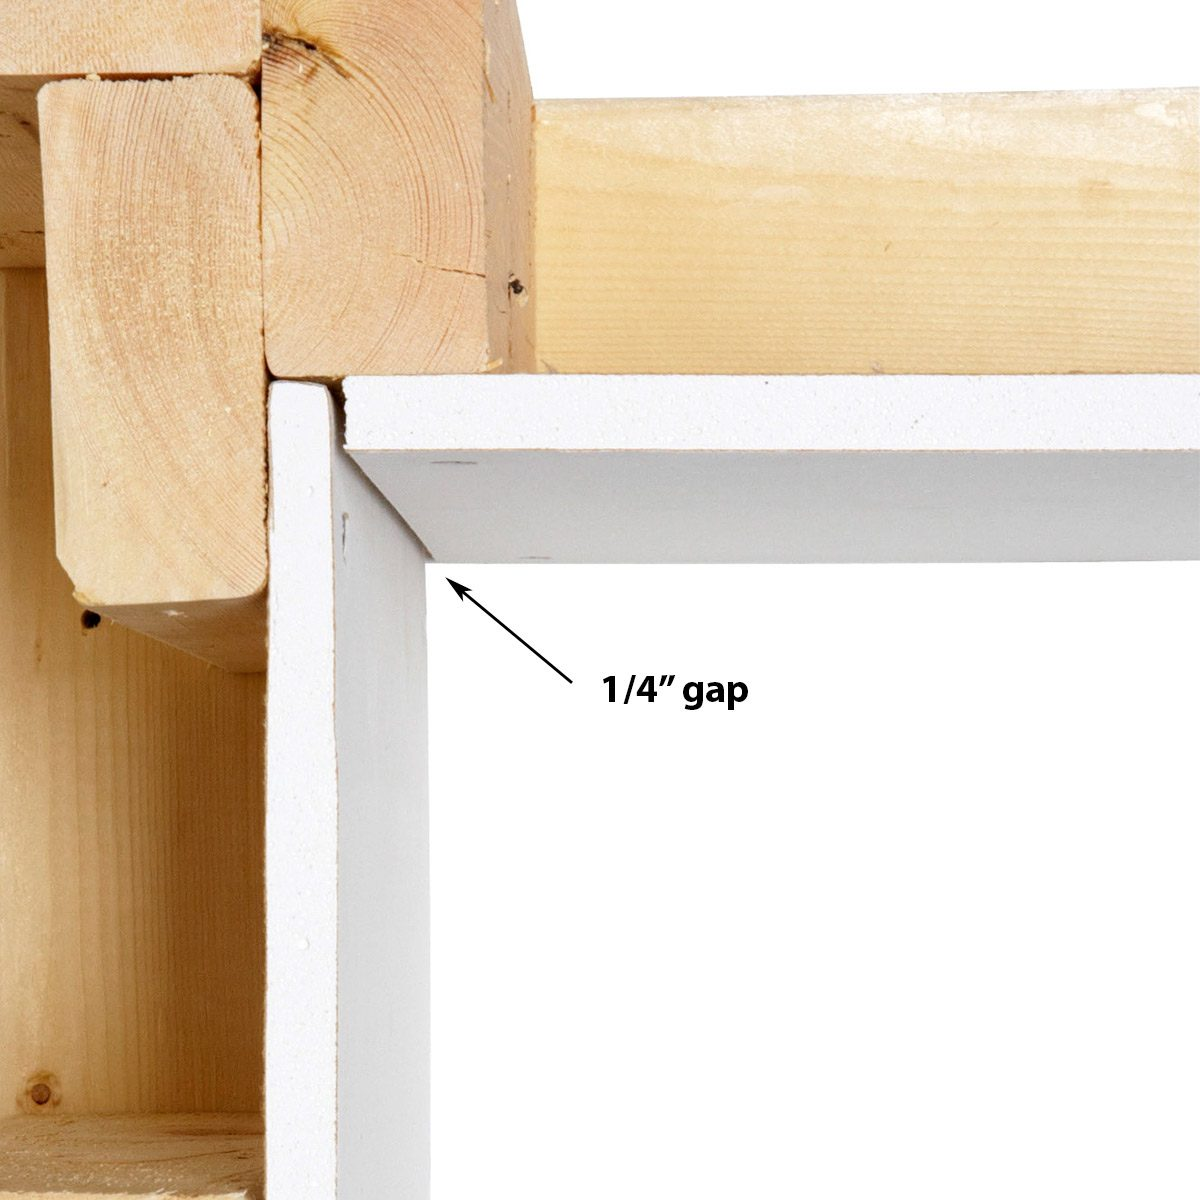 gap in drywall